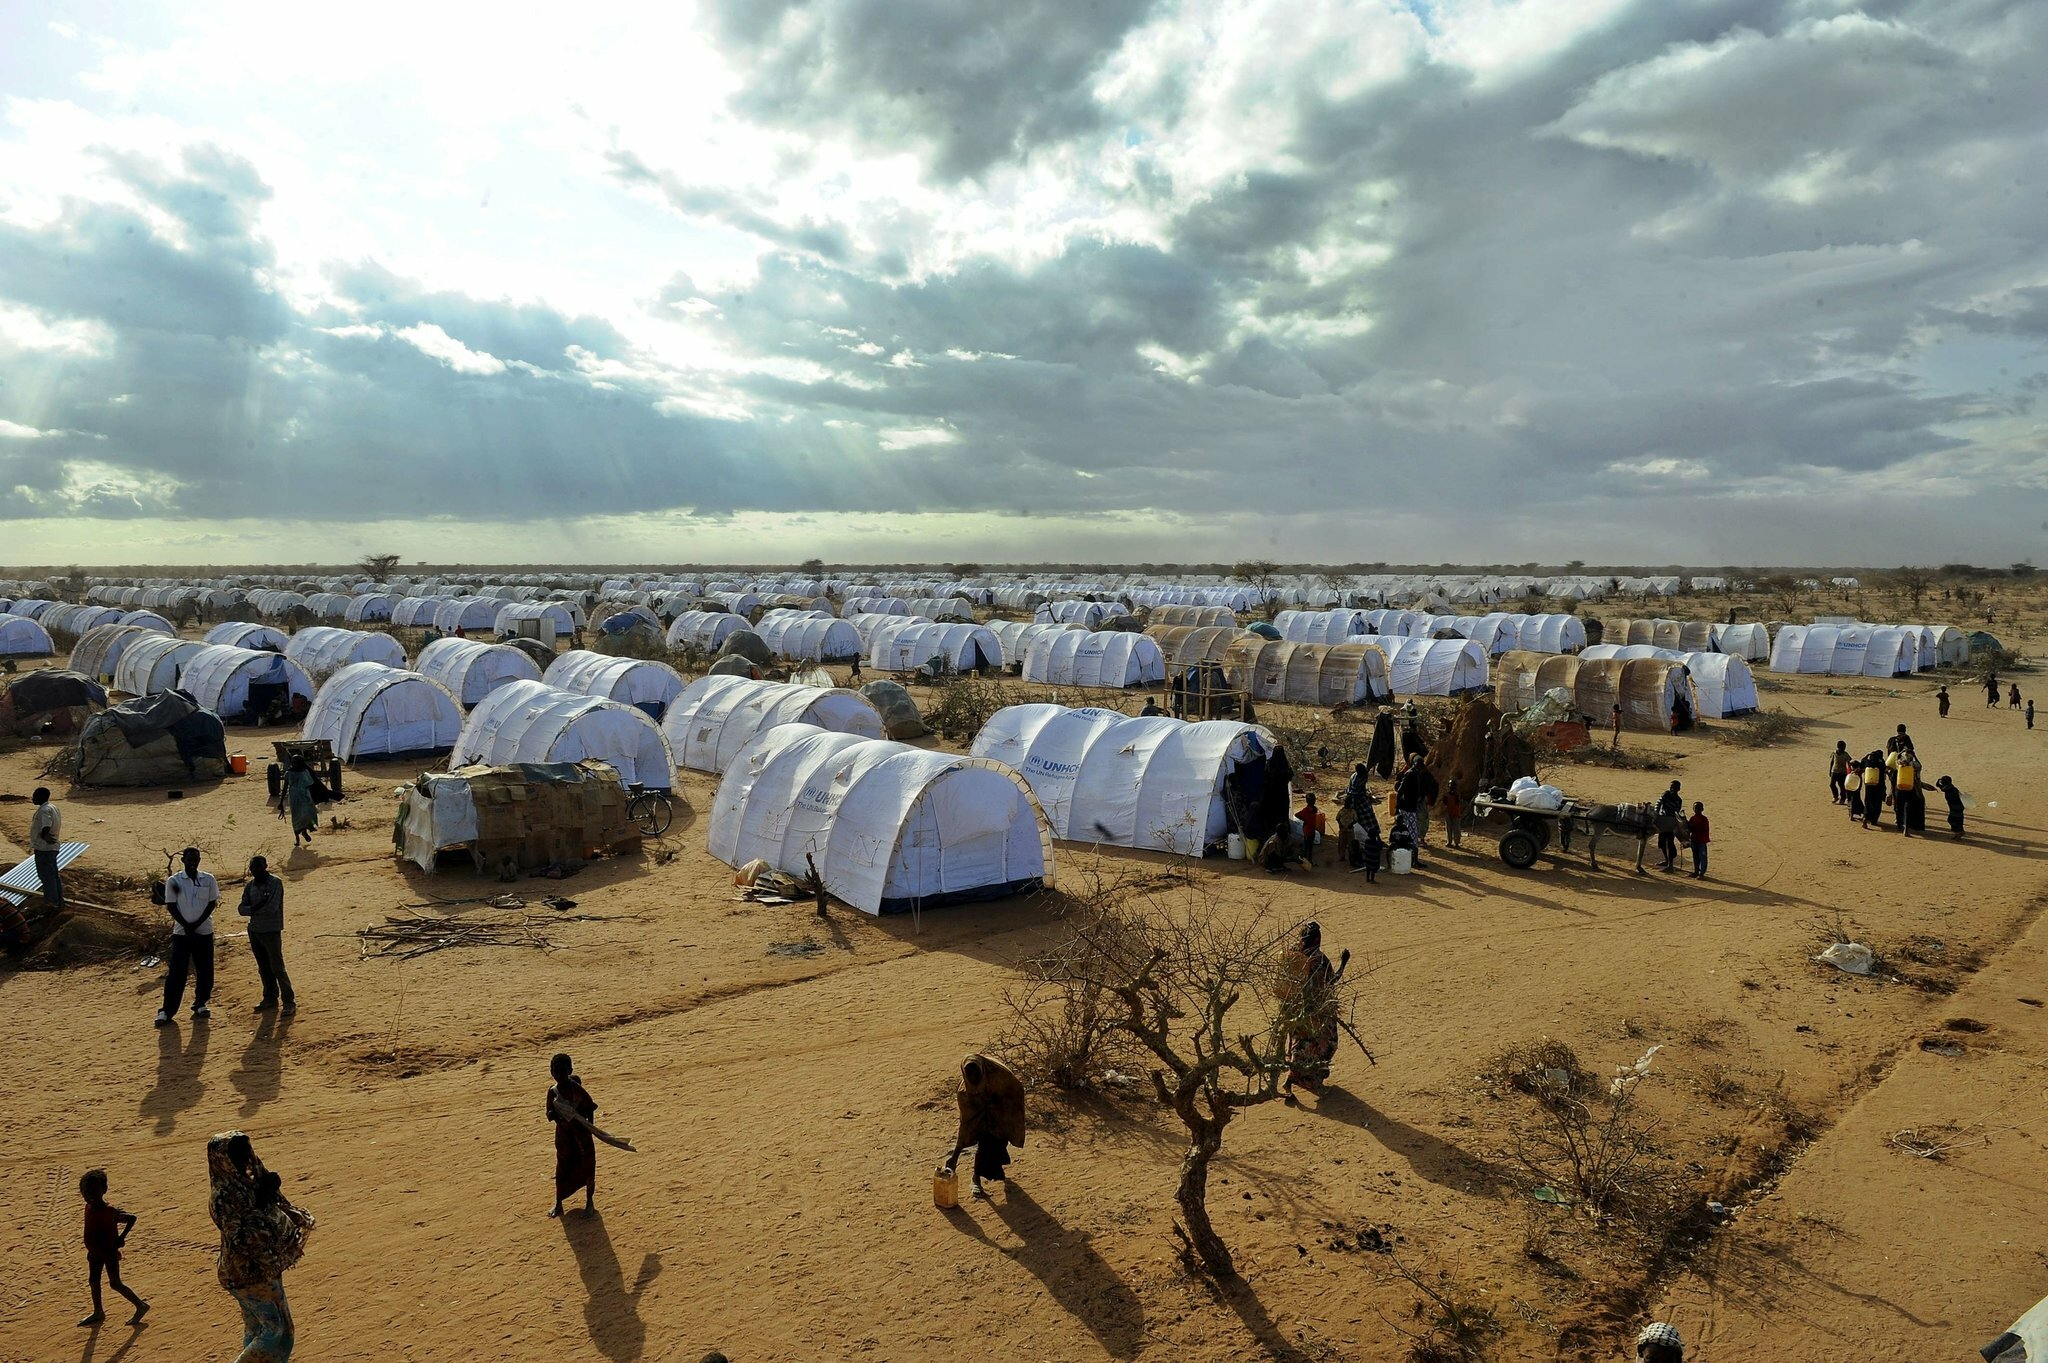 The Dadaab refugee camp in Kenya near the Somali border, where an experiment in online education with two students using a Coursera program met with technological challenges, as well as cultural and linguistic ones. Credit Tony Karumba/Agence France-Presse — Getty Images